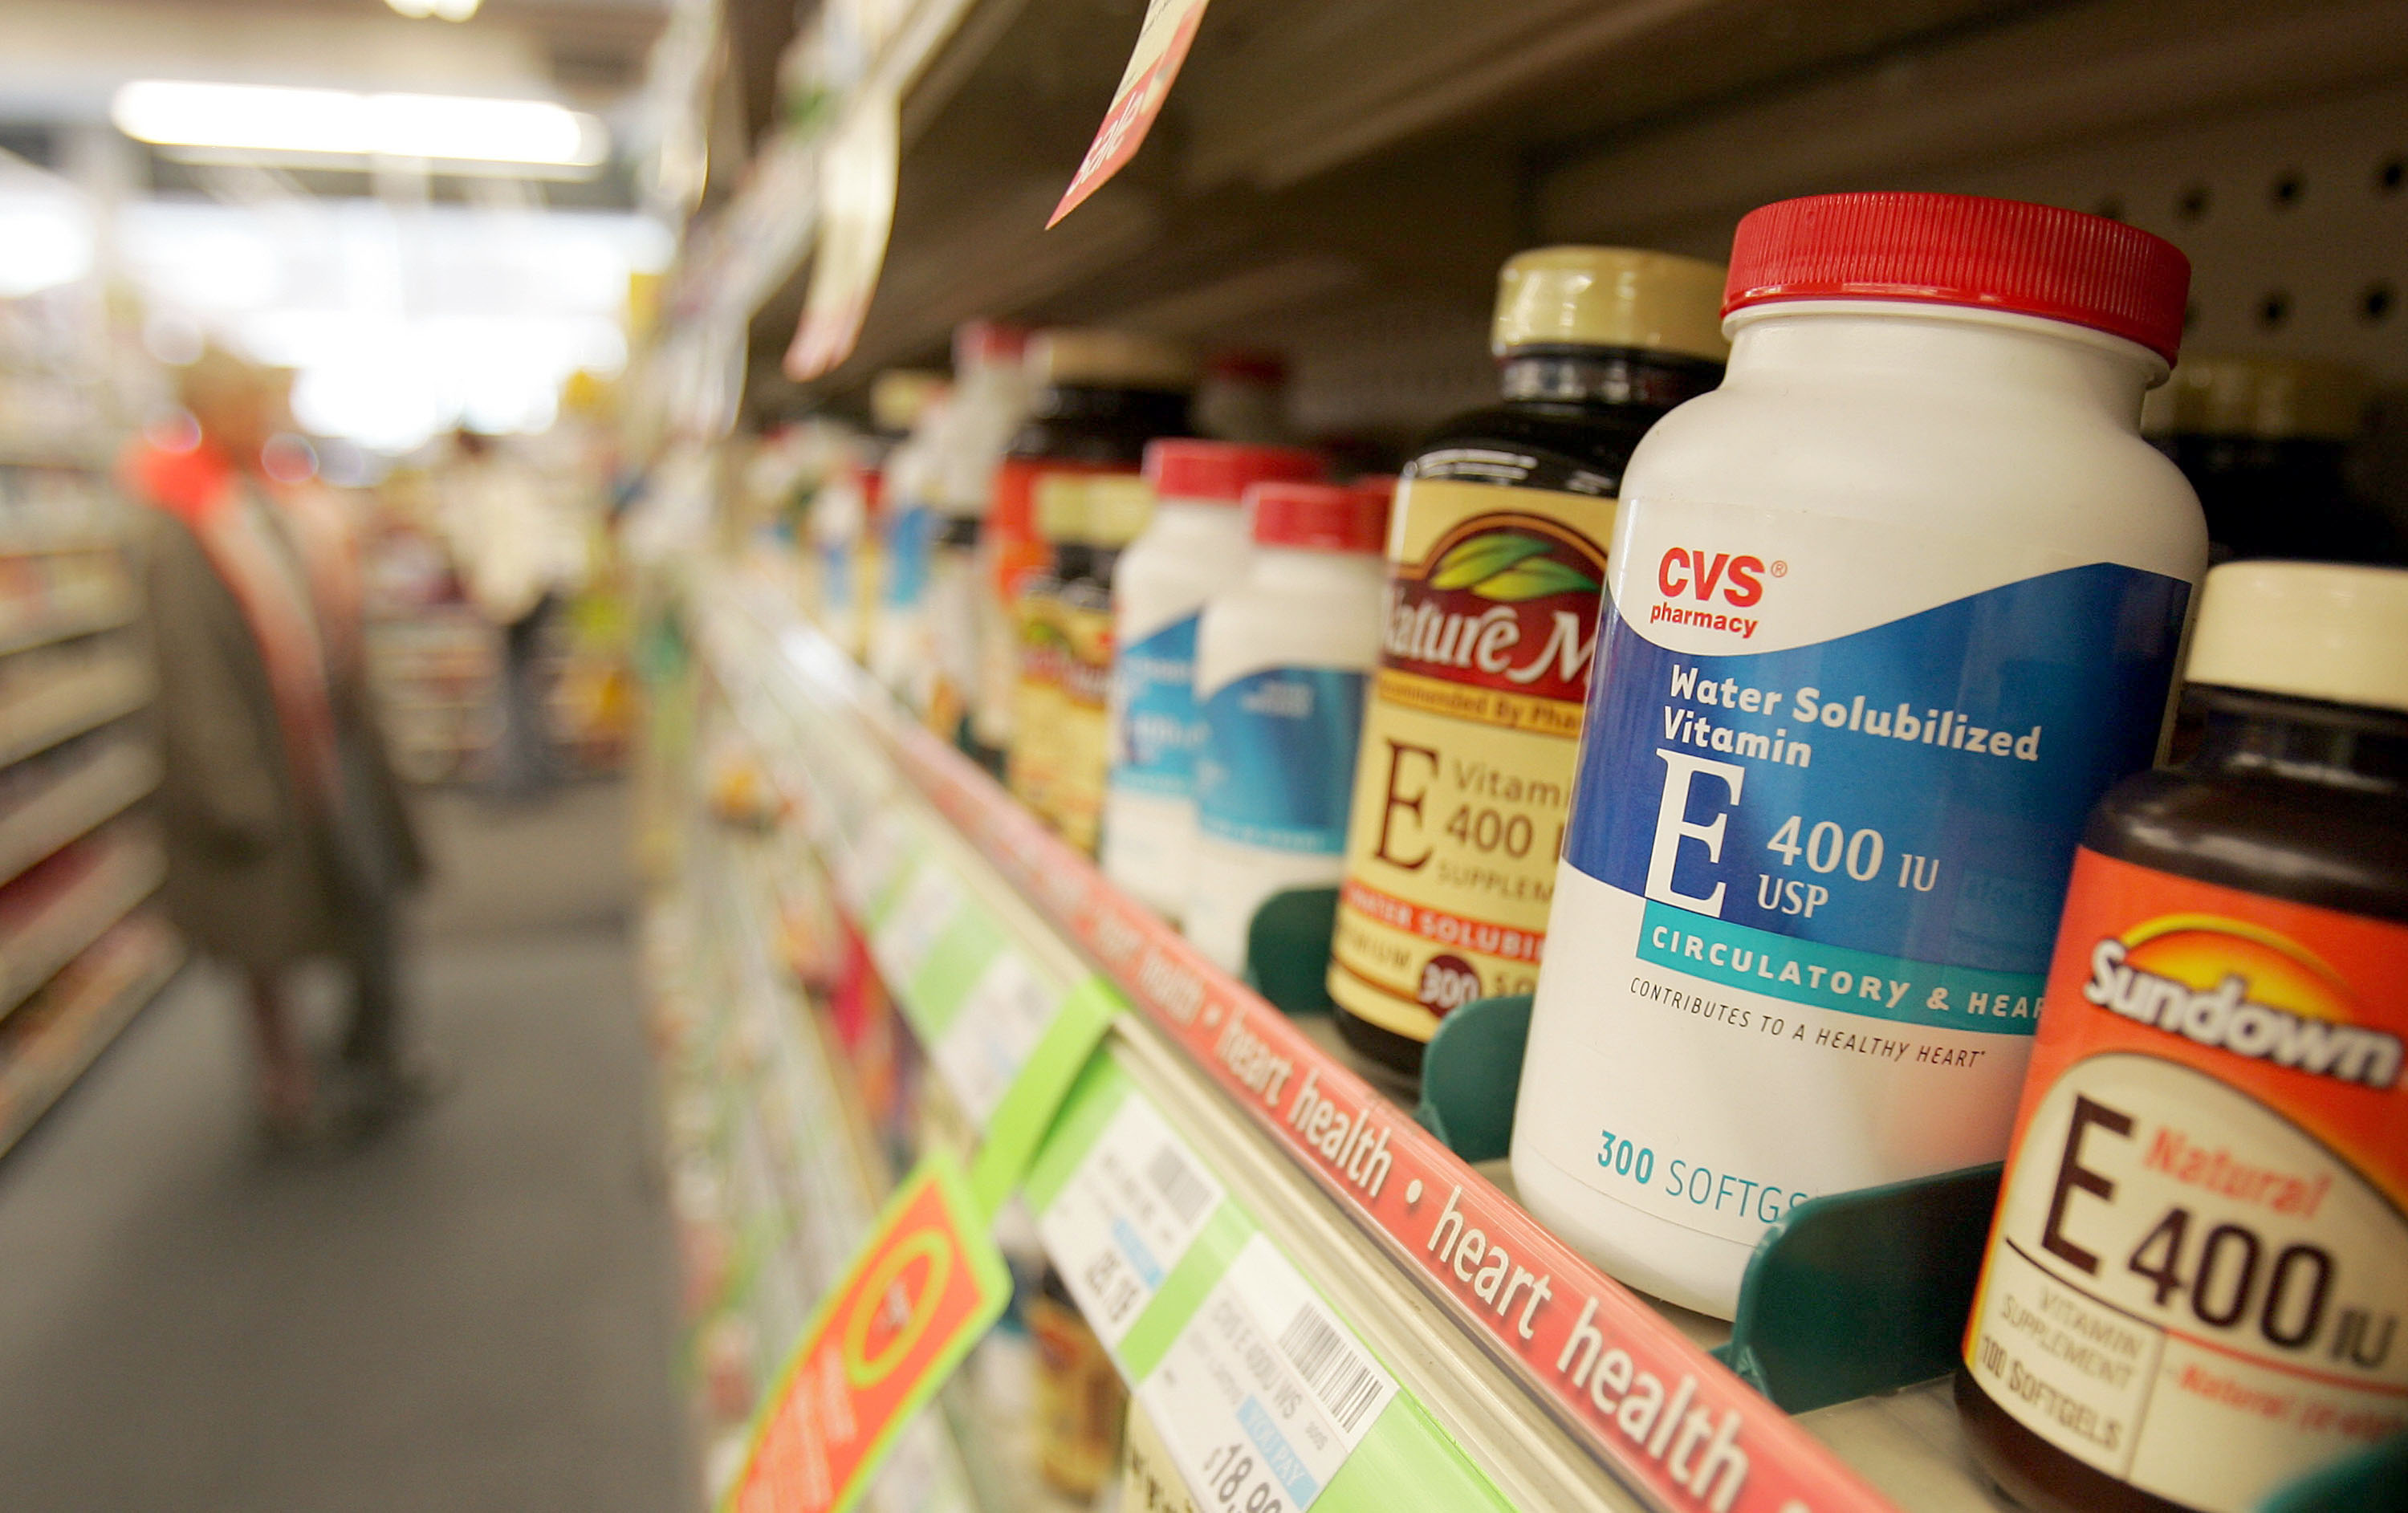 Supplements are a $30 billion racket—here's what experts